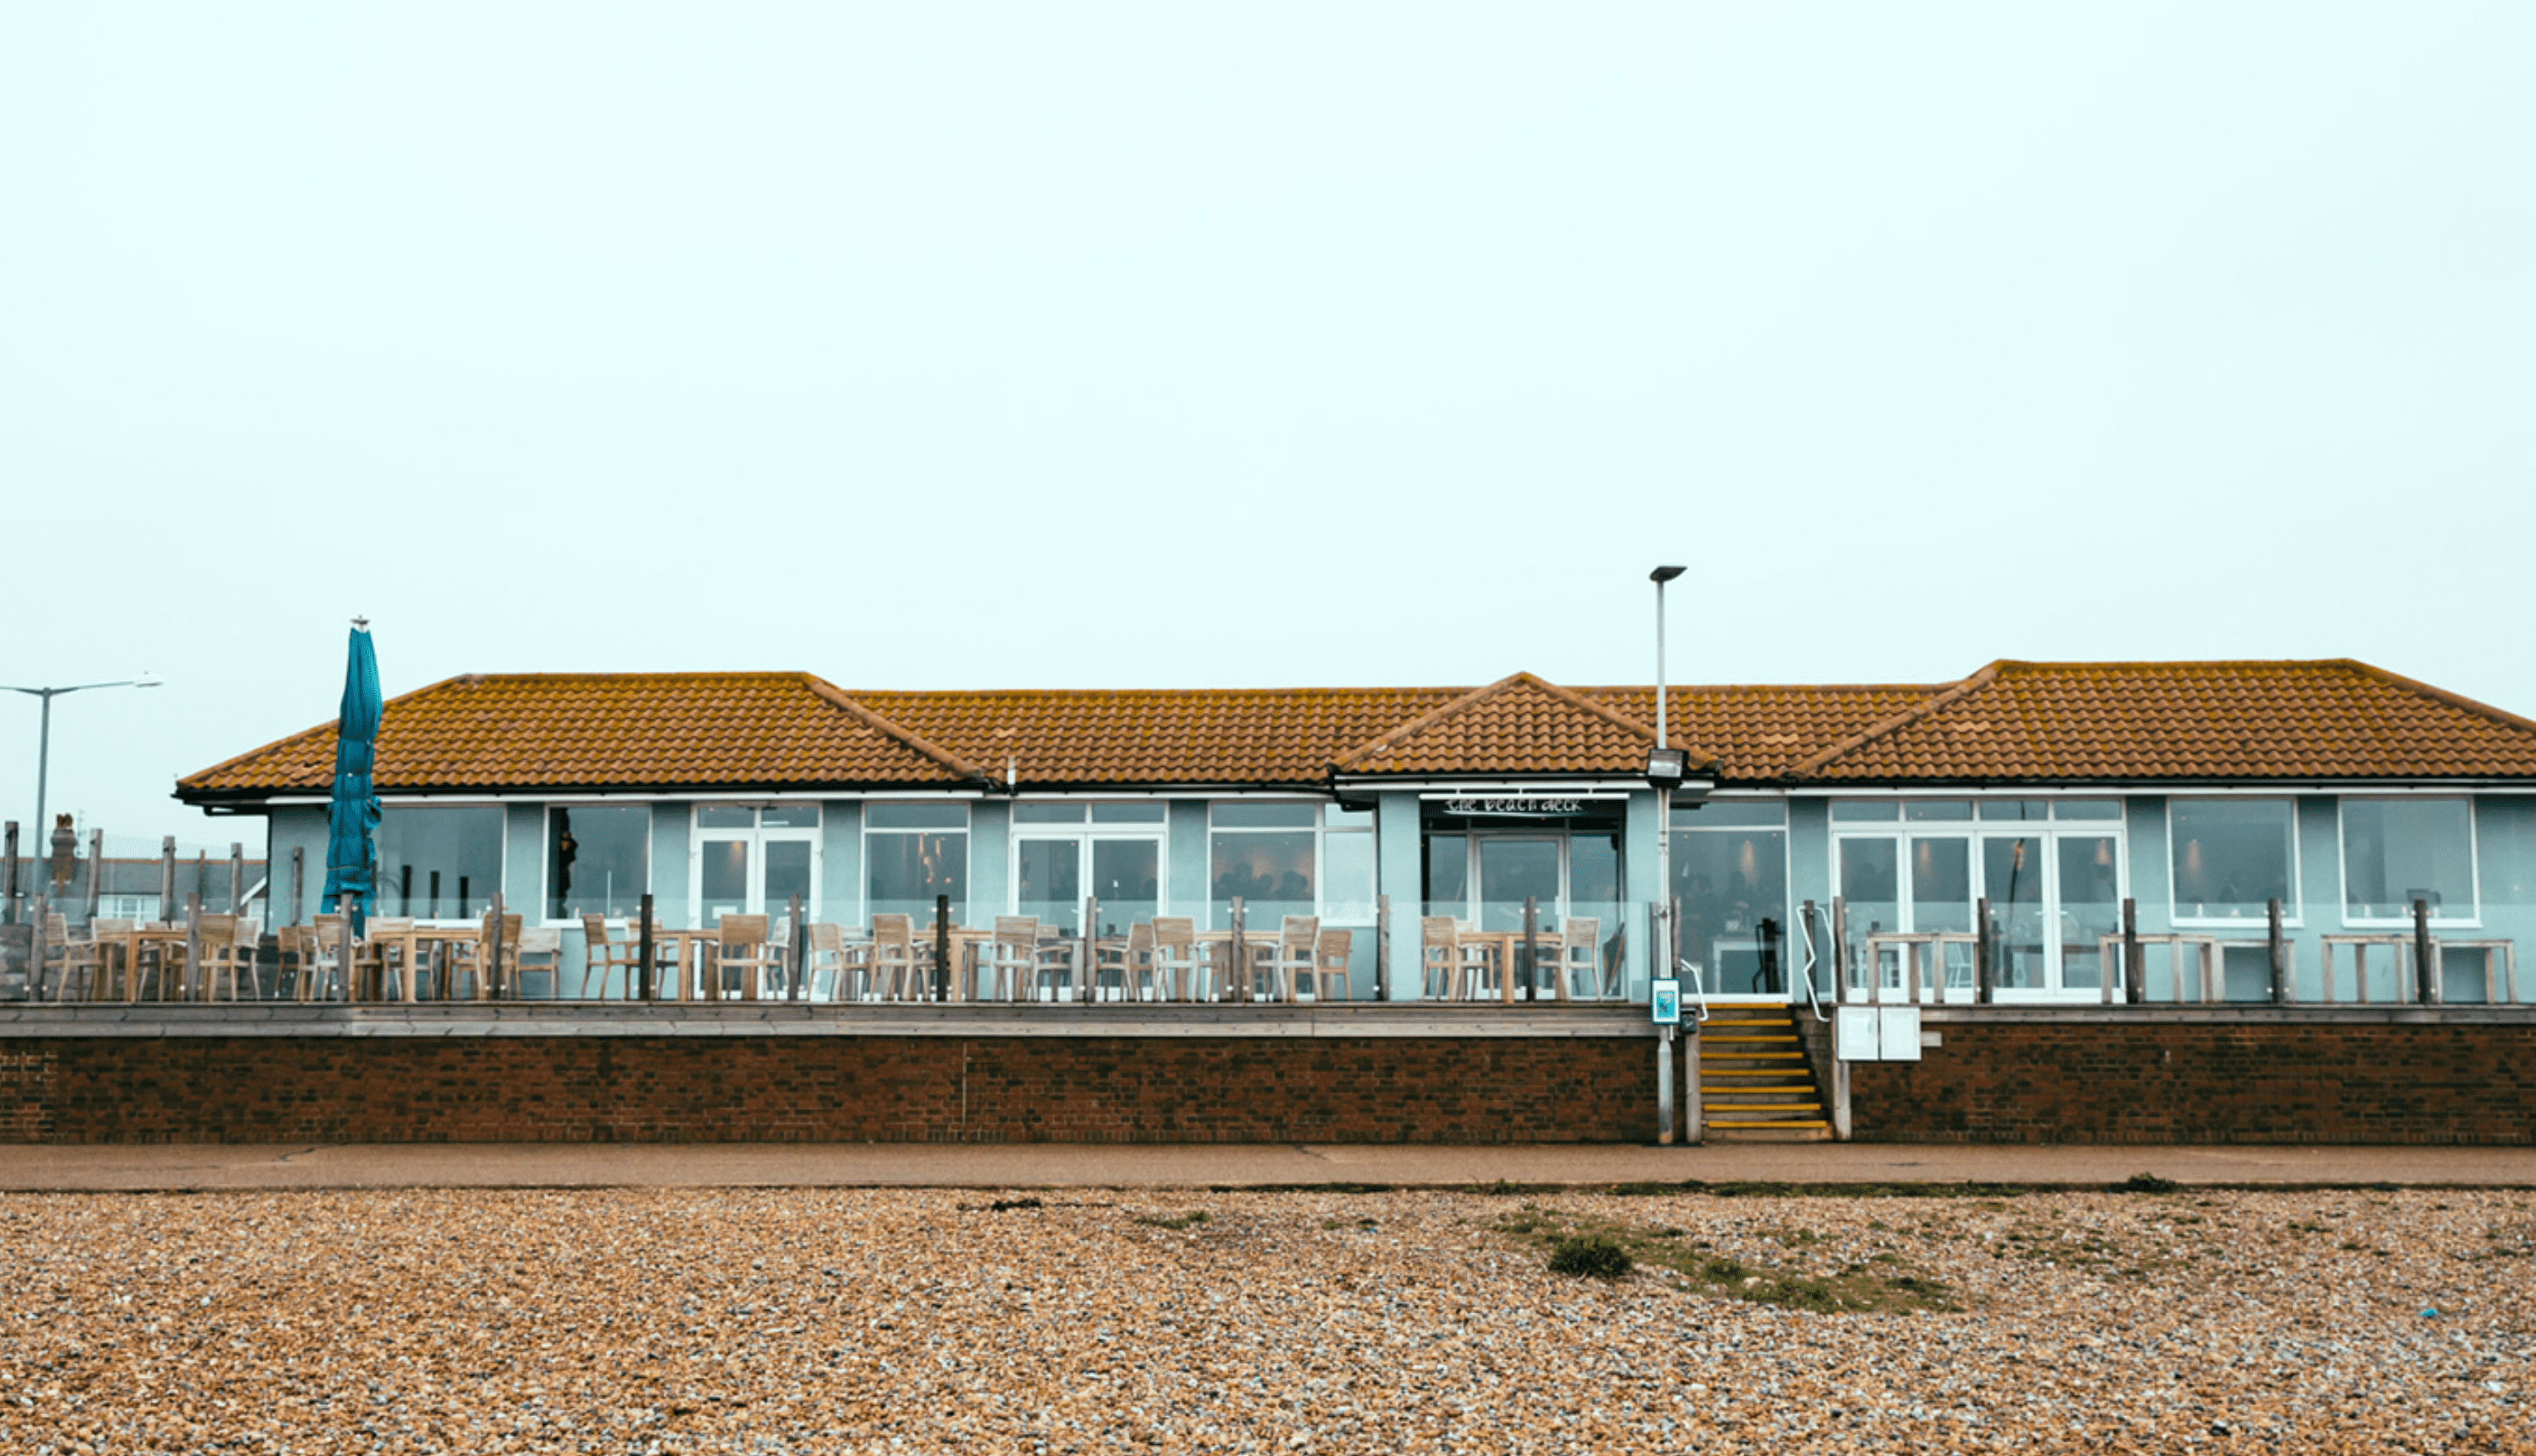 The Beach Deck in Eastbourne